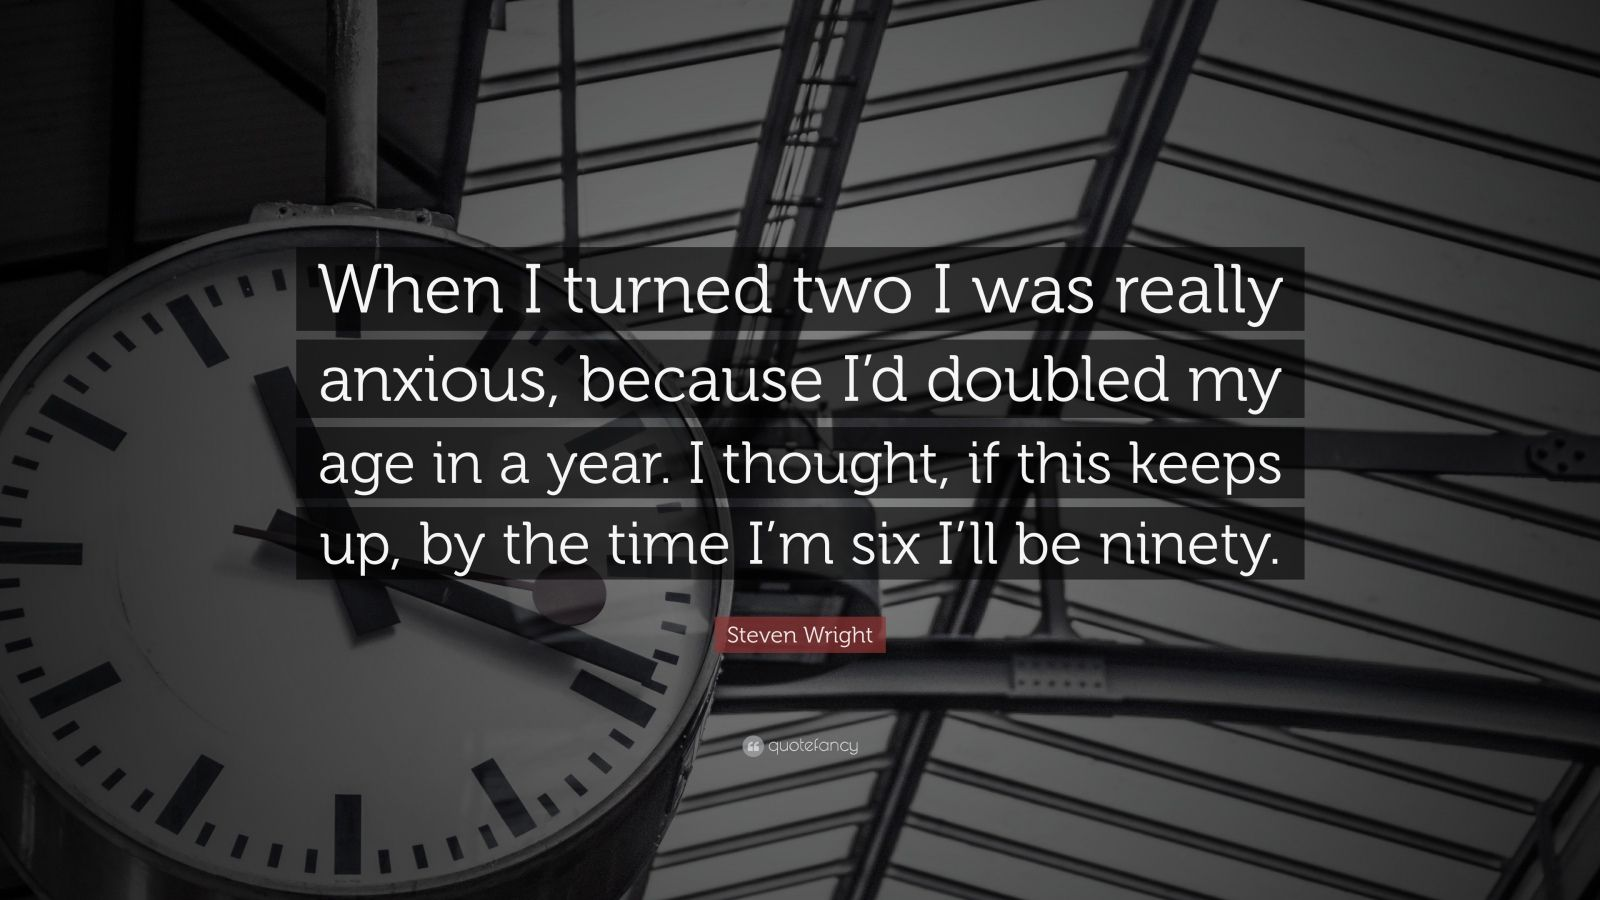 """Steven Wright Quote: """"When I turned two I was really anxious, because I'd doubled my age in a year. I thought, if this keeps up, by the time I'm six I'll be ninety."""""""